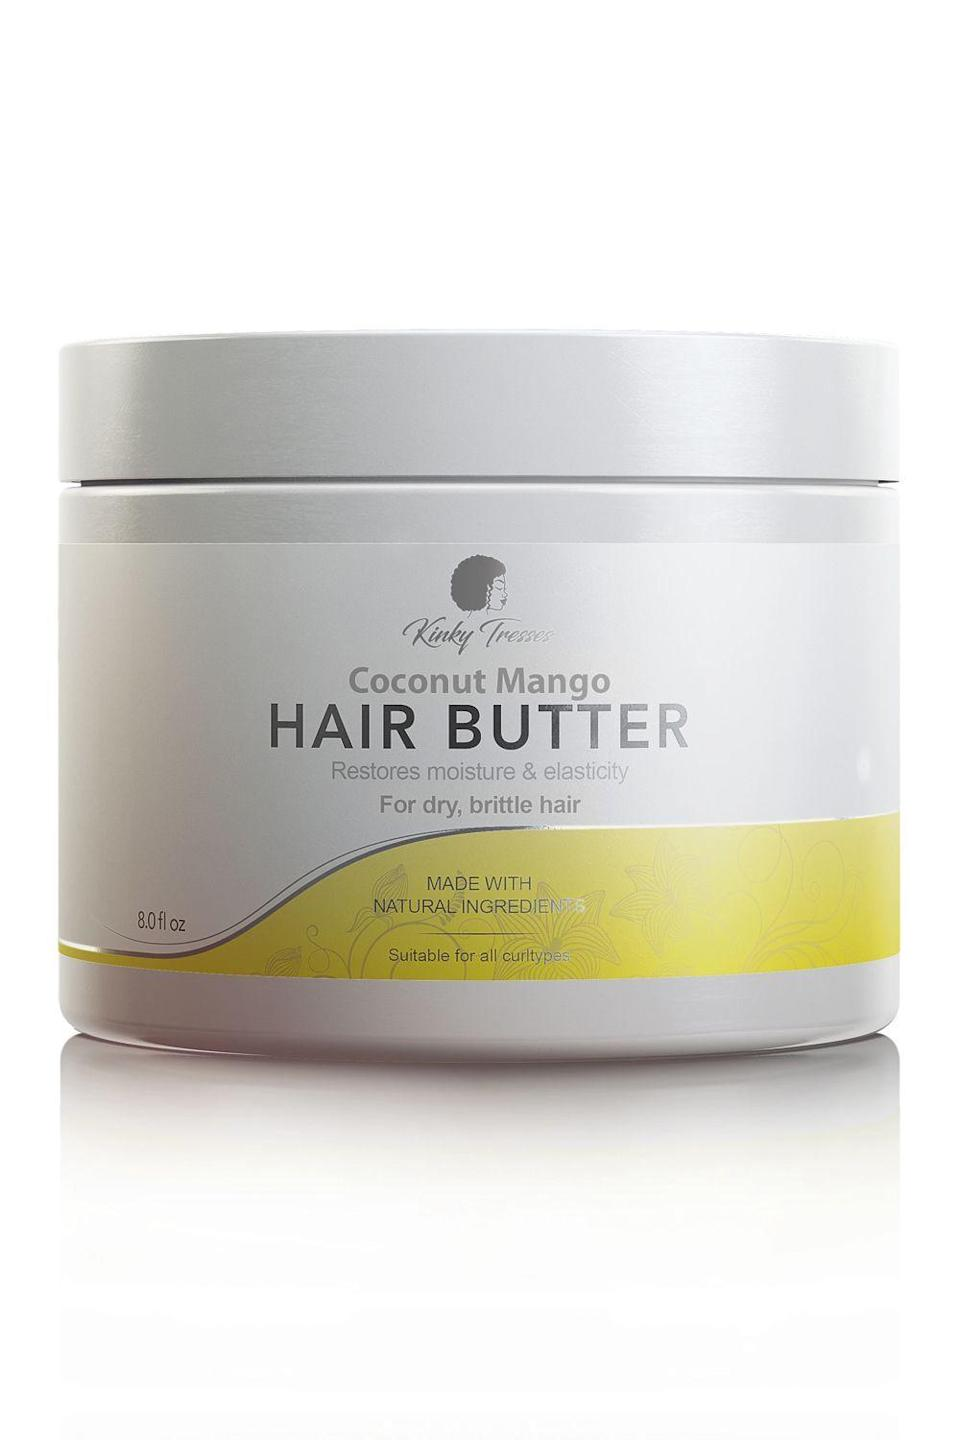 """<p>kinkytresses.com</p><p><strong>$16.00</strong></p><p><a href=""""https://kinkytresses.com/collections/all/products/coconut-mango-hair-butter-4-oz"""" rel=""""nofollow noopener"""" target=""""_blank"""" data-ylk=""""slk:Shop Now"""" class=""""link rapid-noclick-resp"""">Shop Now</a></p><p>The combo of mango and shea butter in this Black-owned hair product make it smell good enough to eat (please don't do that though) while also <strong>infusing your hair with much-needed moisture.</strong> You can also use this non-greasy butter a couple of different ways: Work it through your hair when your curls are feeling rough or use it to seal your <a href=""""https://www.cosmopolitan.com/style-beauty/beauty/a26800557/twist-out-how-to/"""" rel=""""nofollow noopener"""" target=""""_blank"""" data-ylk=""""slk:two-strand twists"""" class=""""link rapid-noclick-resp"""">two-strand twists</a>. </p>"""